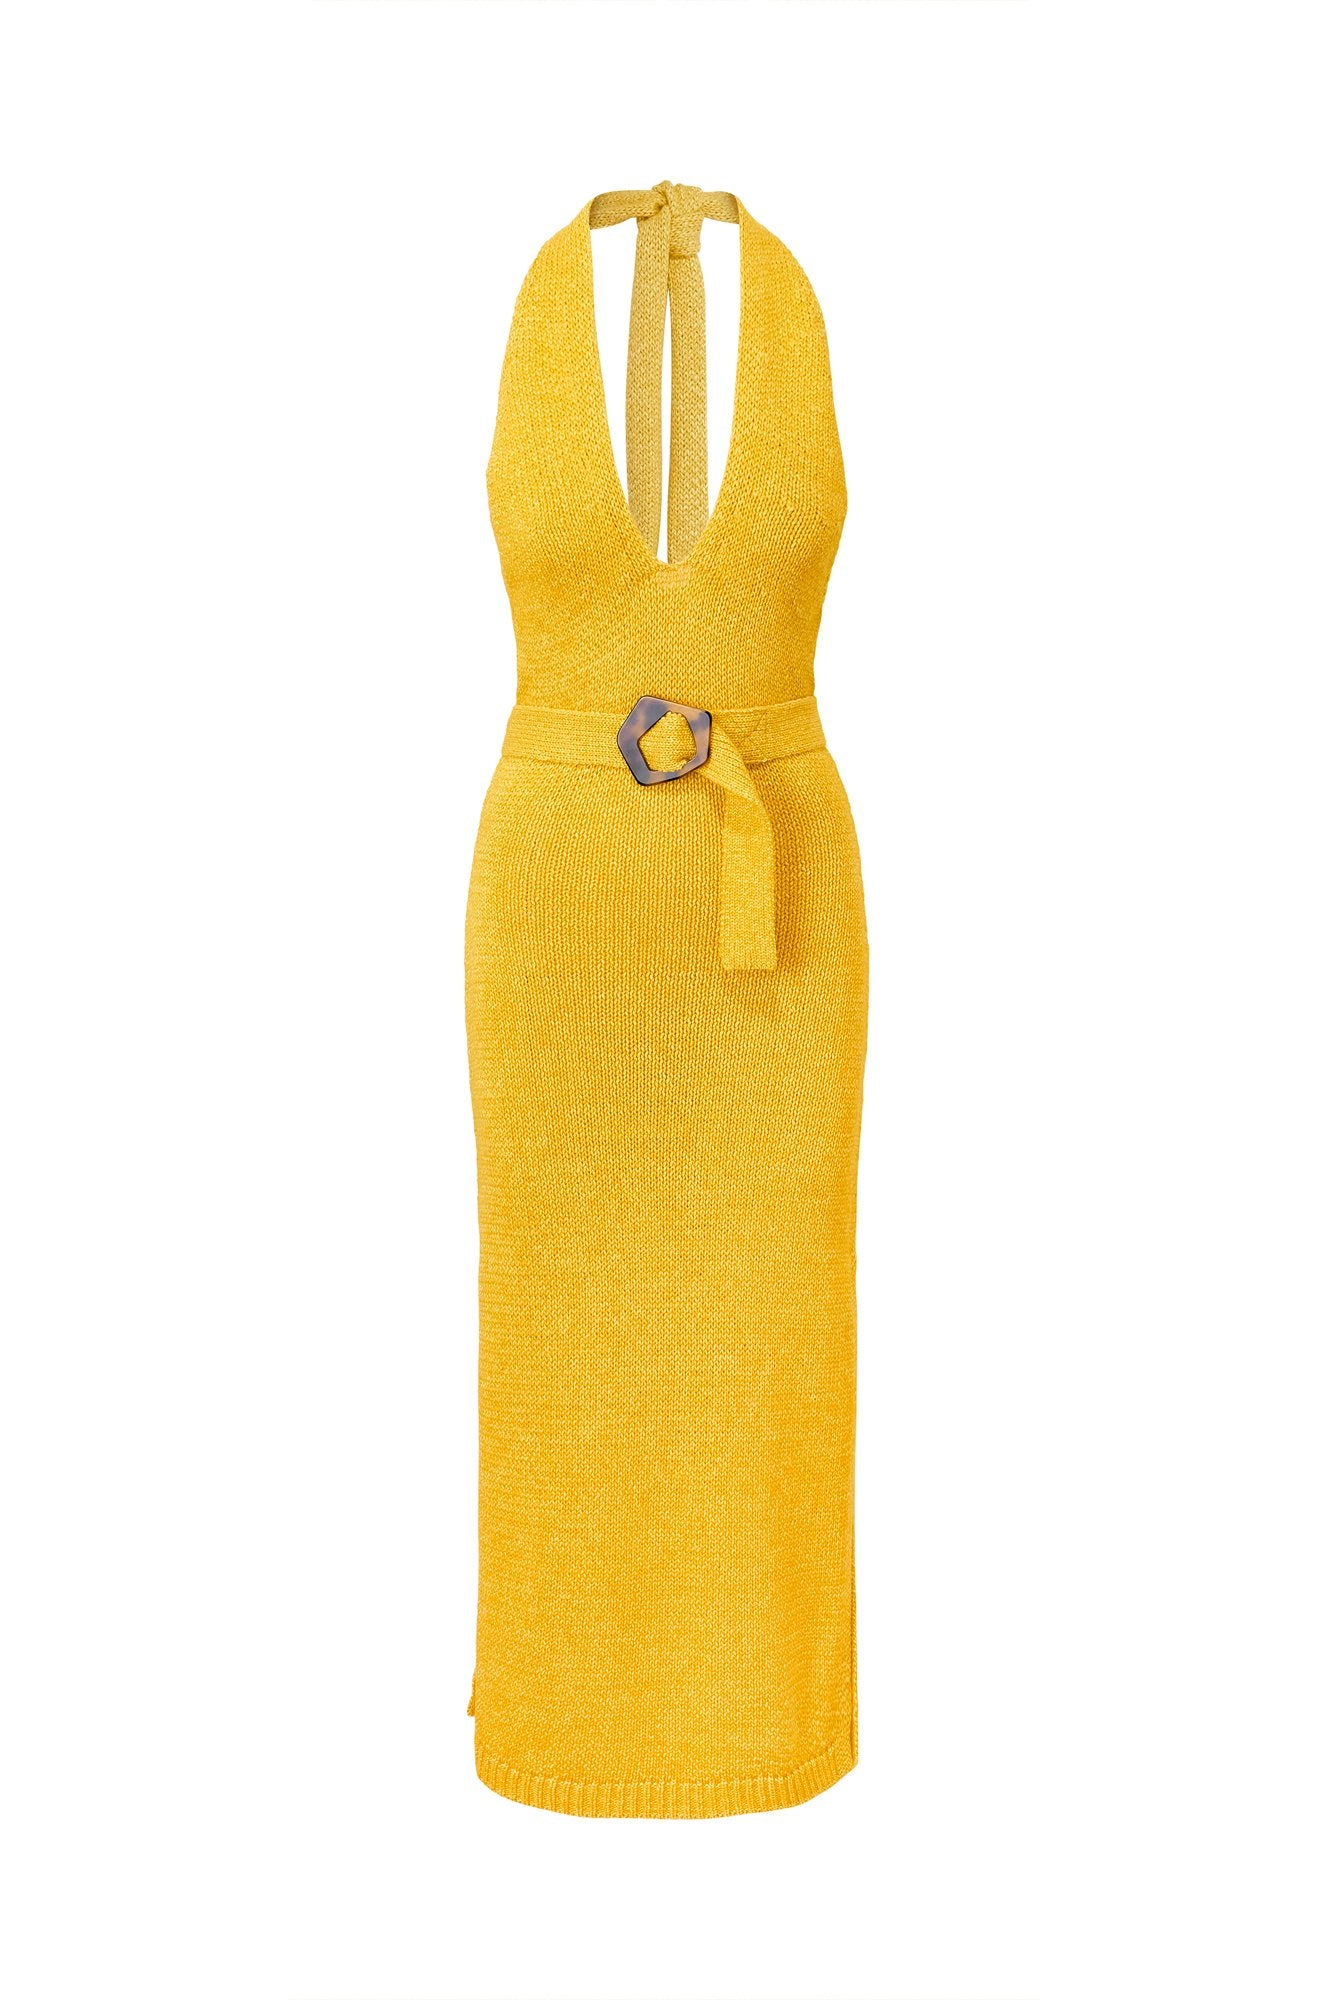 Harissa Dress - Sunflower